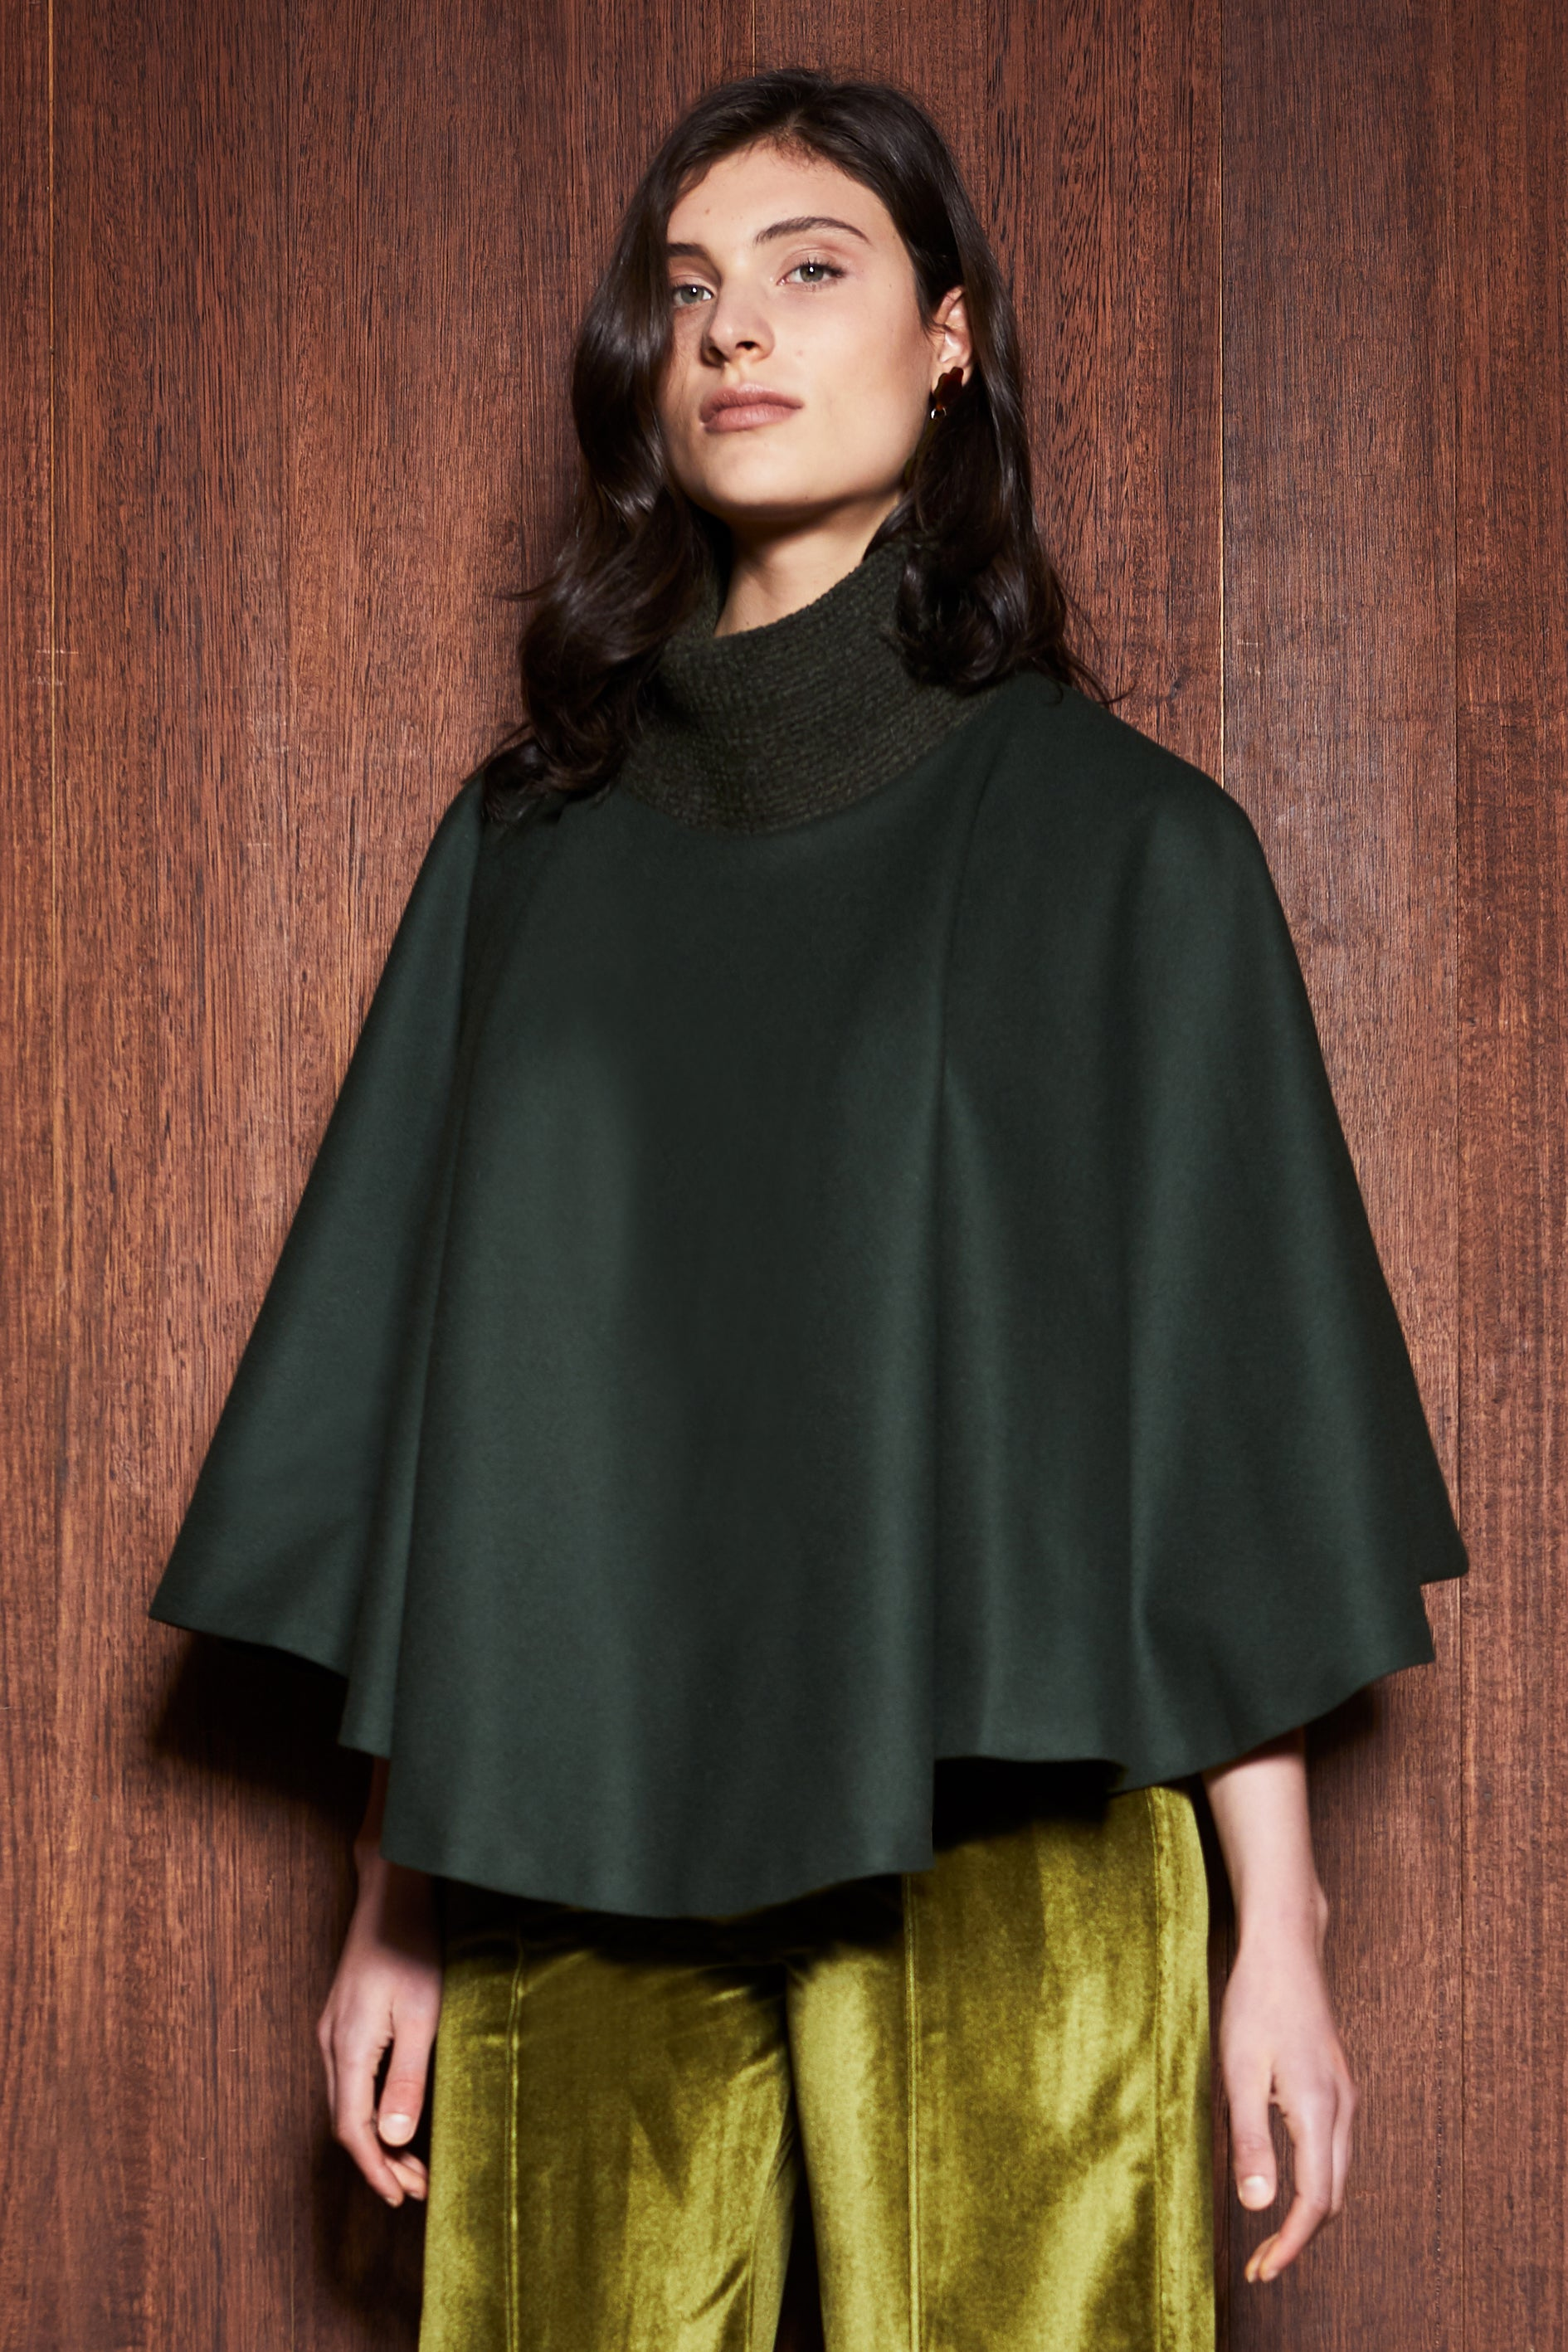 Women's Clothing in Melbourne Australia Fern Cape Olive Green Wool Collar Poncho